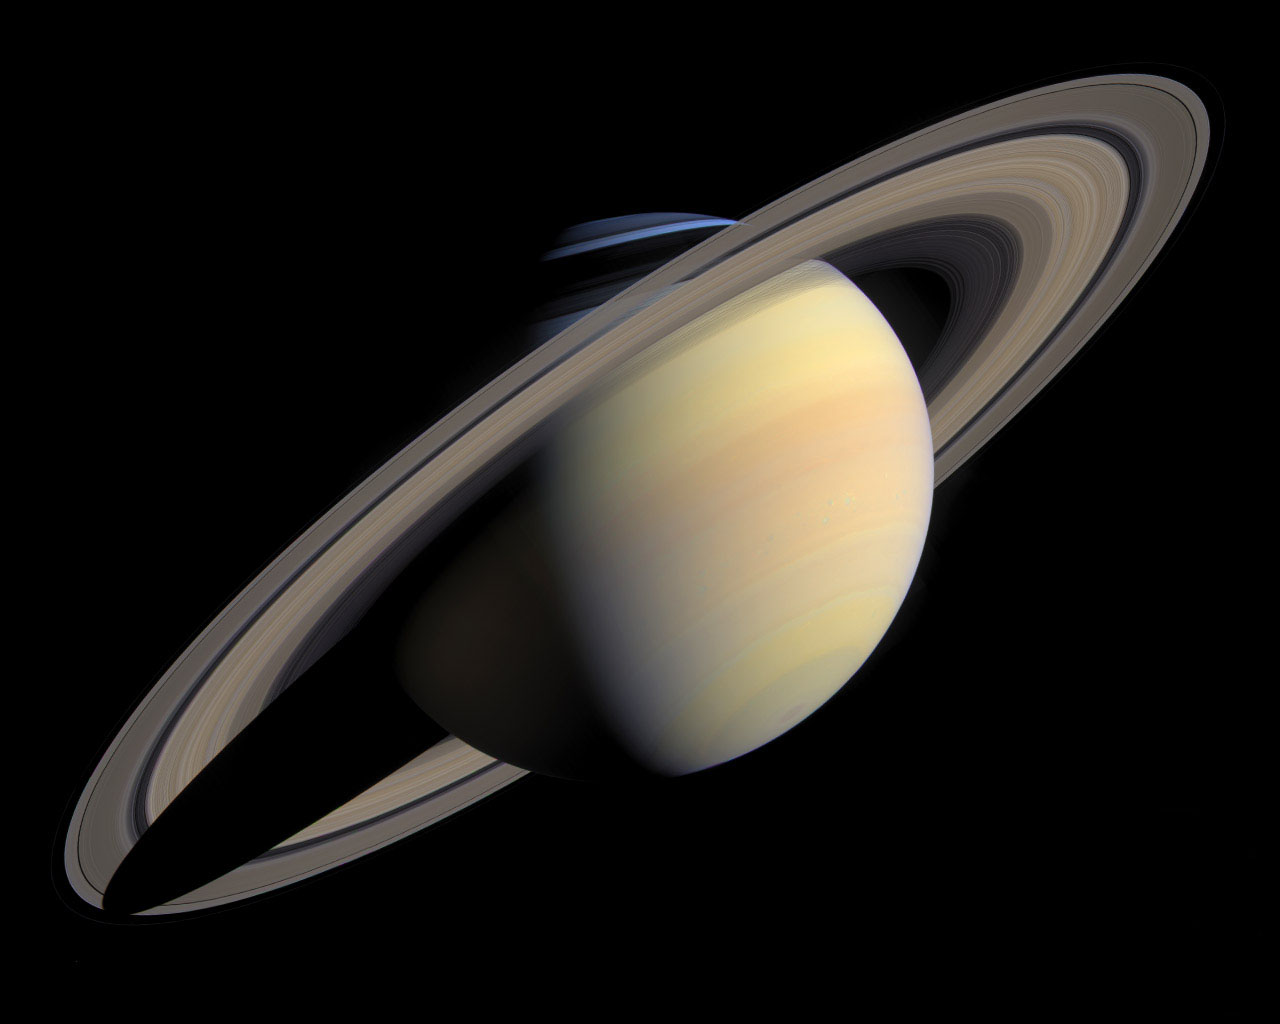 Saturn's main rings are an exquisite sight; the massive Phoebe ring is much larger but